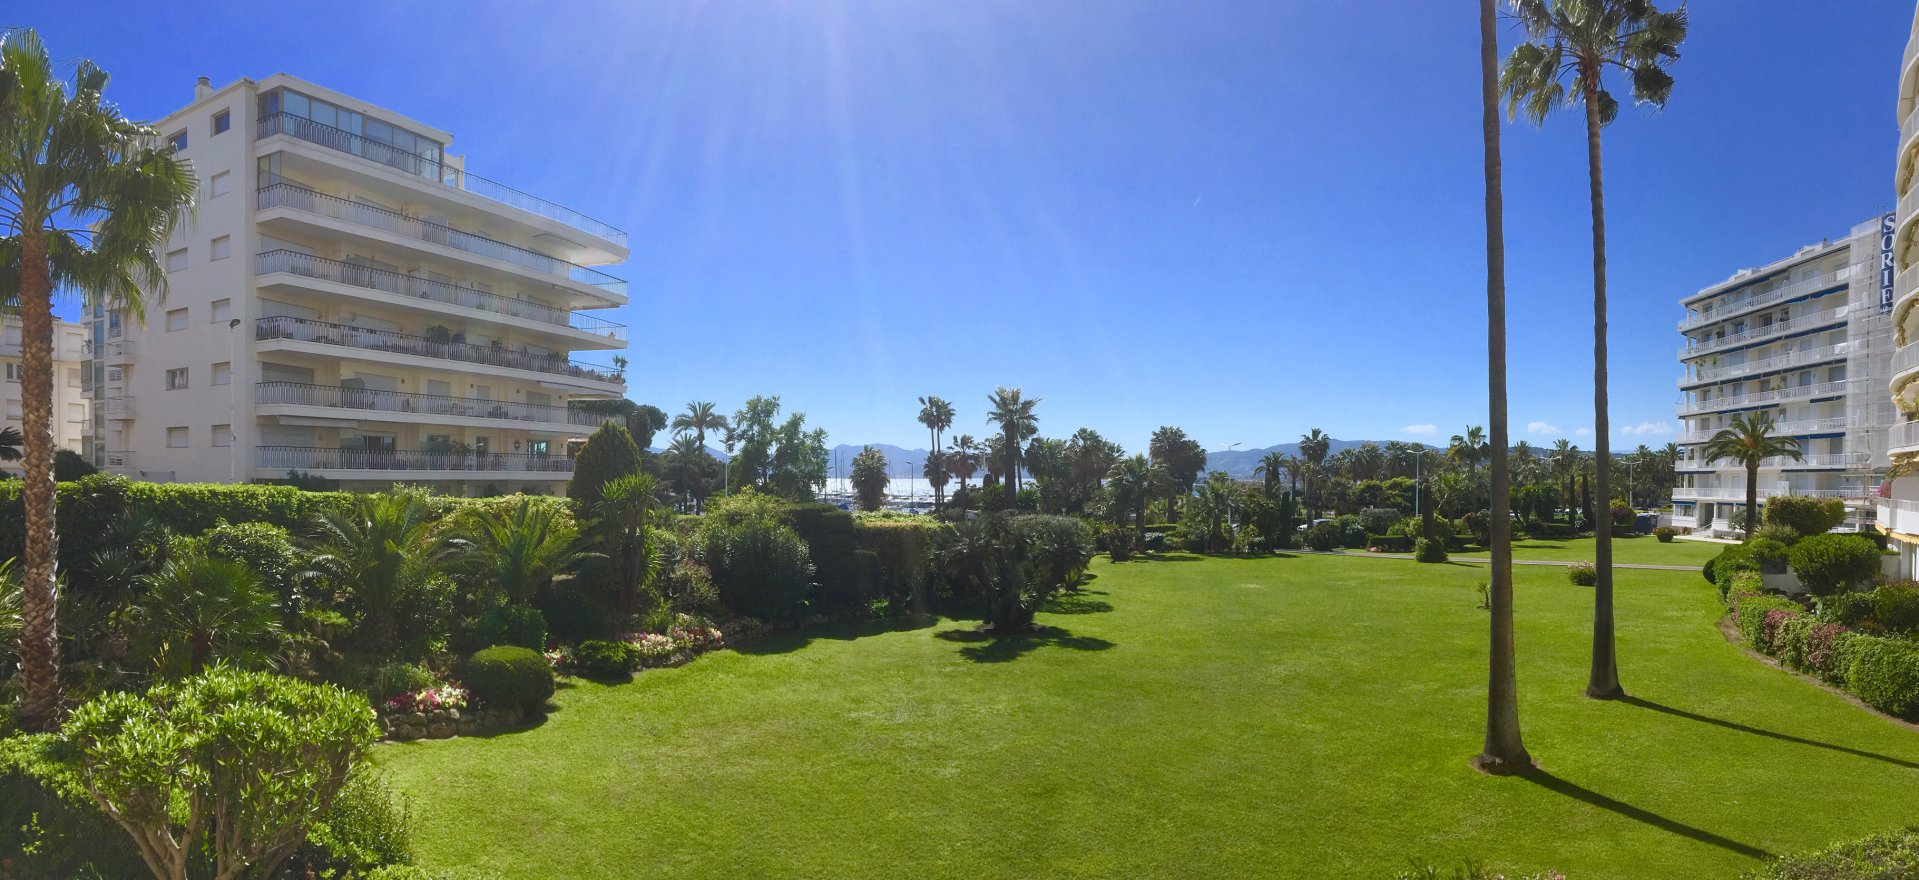 CANNES CROISETTE 2 BEDROOM APPARTEMENT WITH SEA VIEW